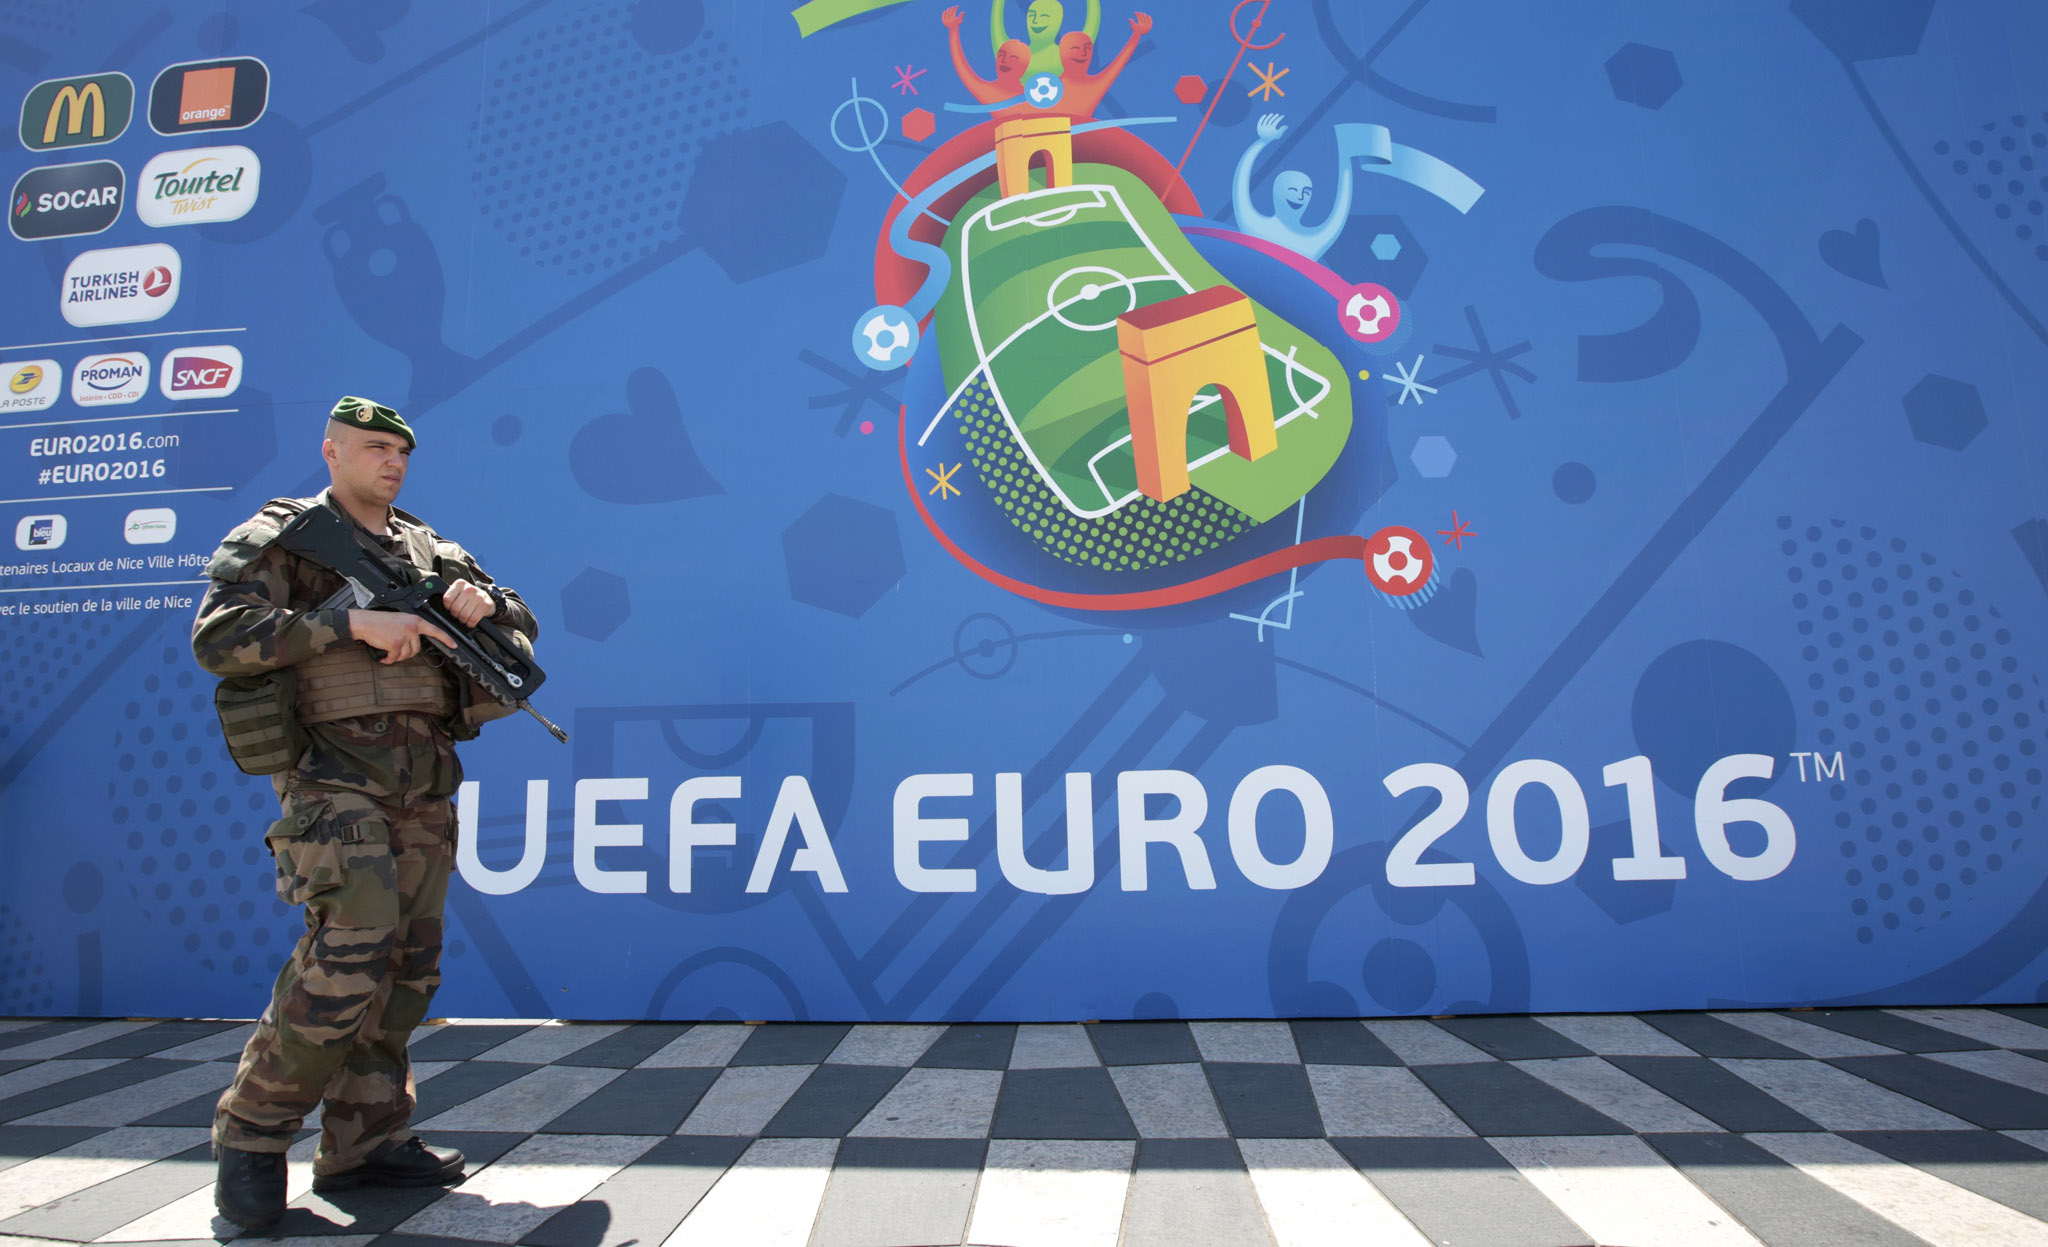 A soldier patrols outside a fanzone ahead of the UEFA 2016 European Championship in Nice, France, June 8, 2016.  REUTERS/Eric Gaillard